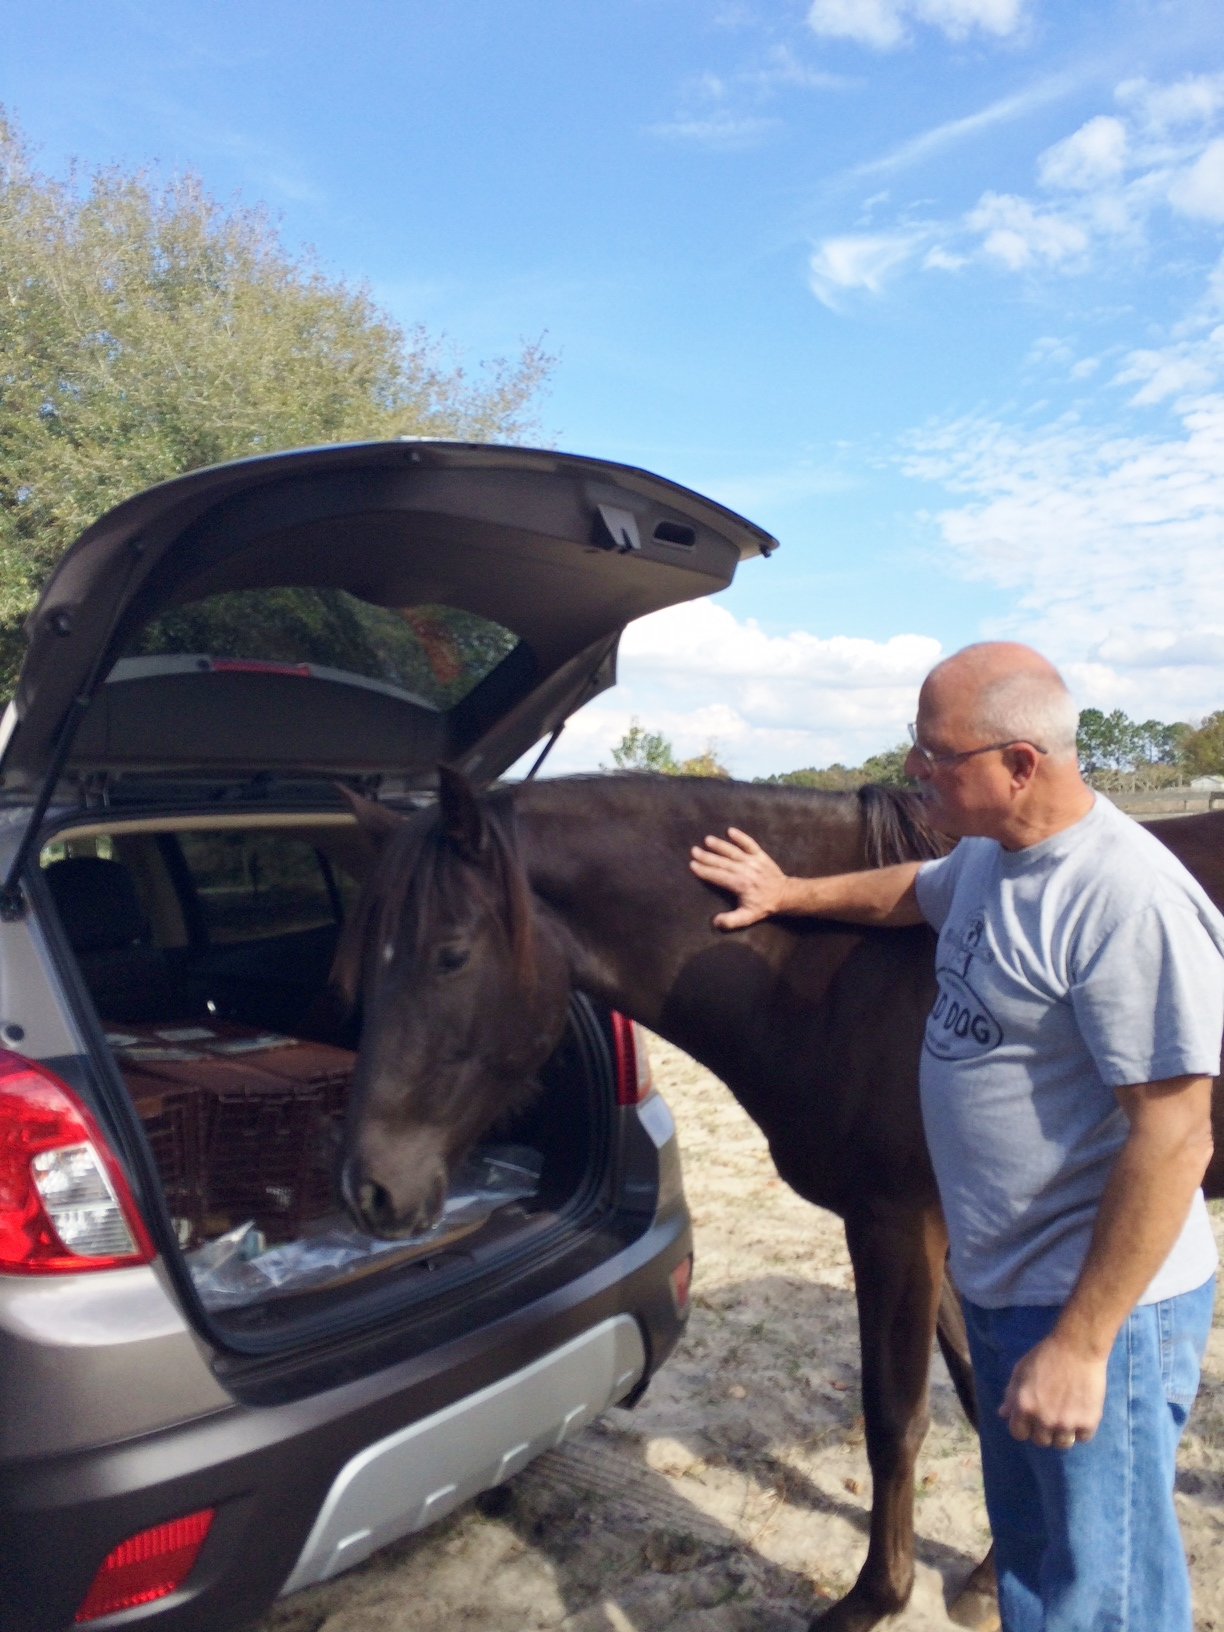 horse checking out trunk.JPG